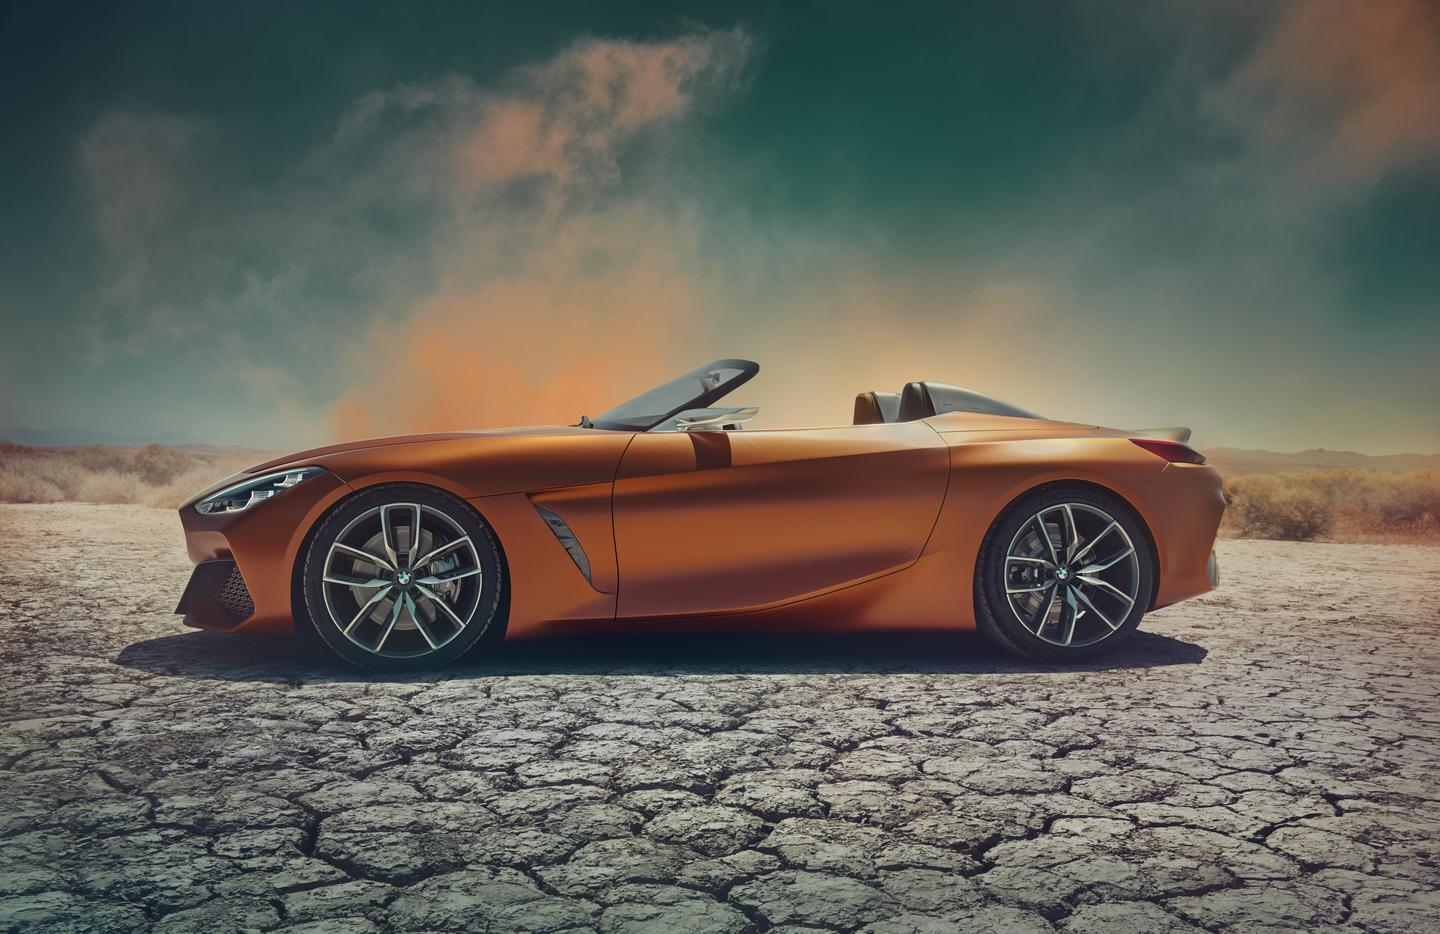 BMW says the Concept Z4 design follows a wedge shape